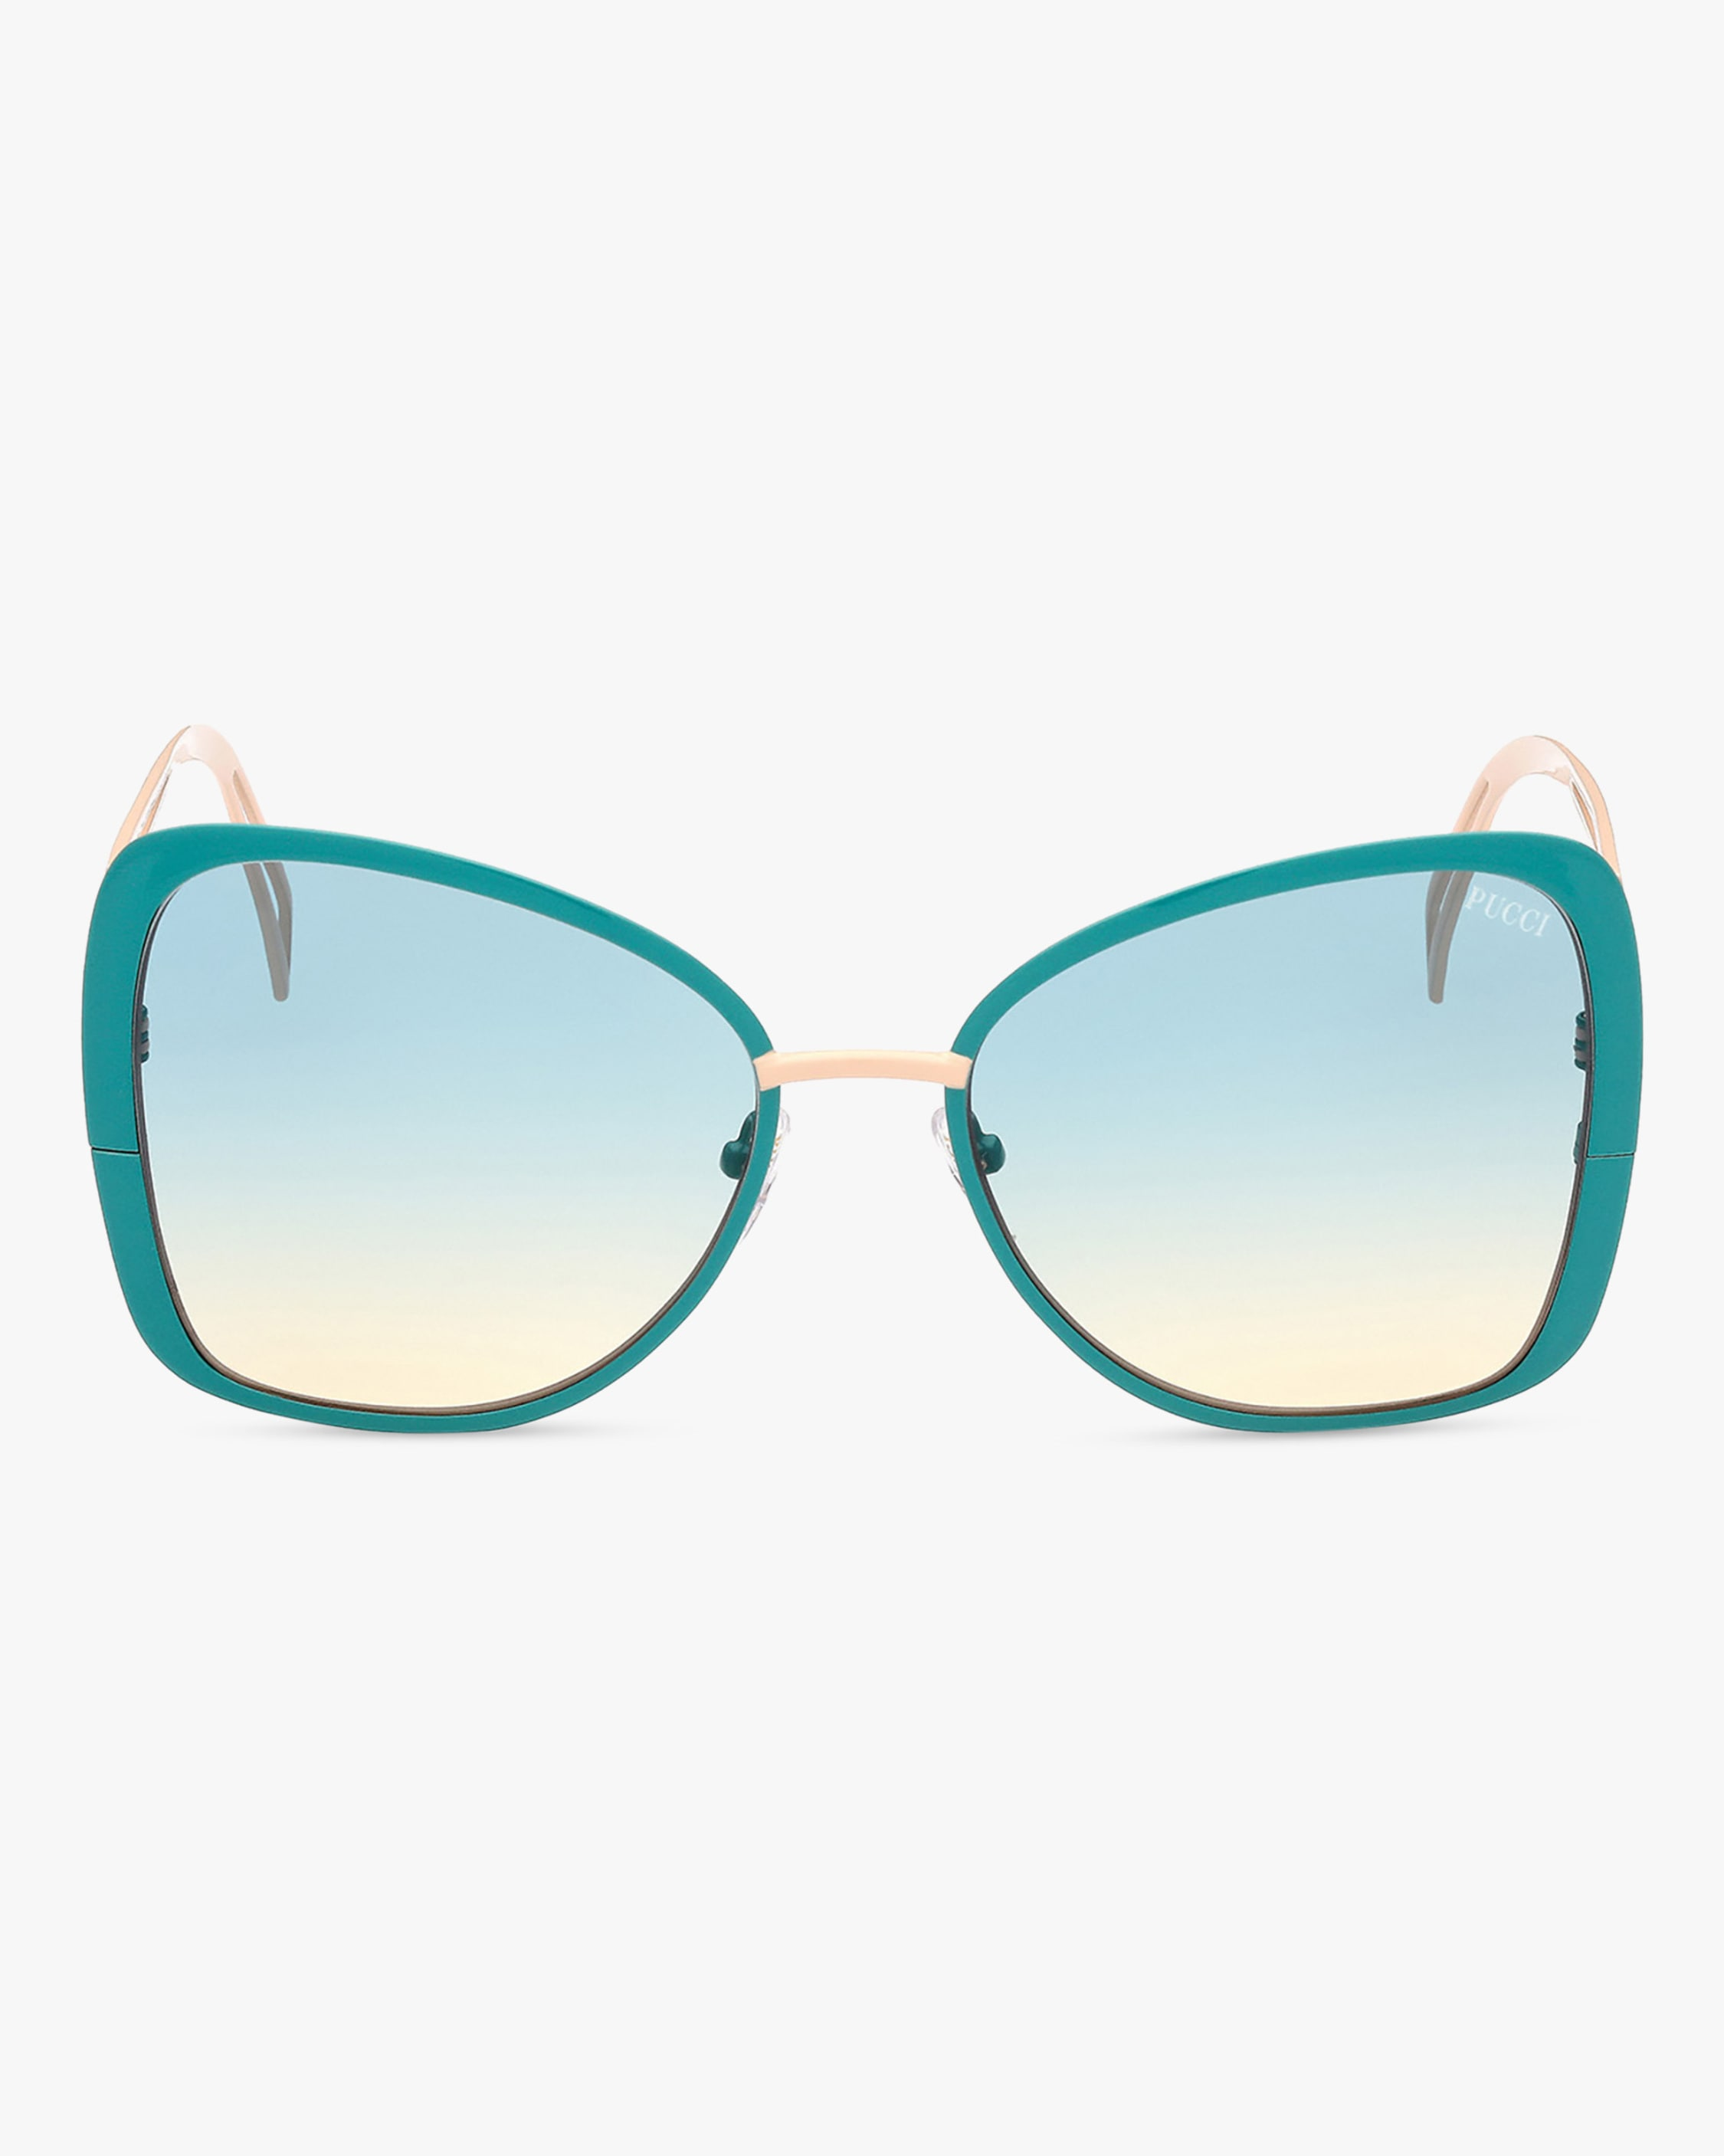 Emilio Pucci Turquoise Butterfly Metal Sunglasses 1